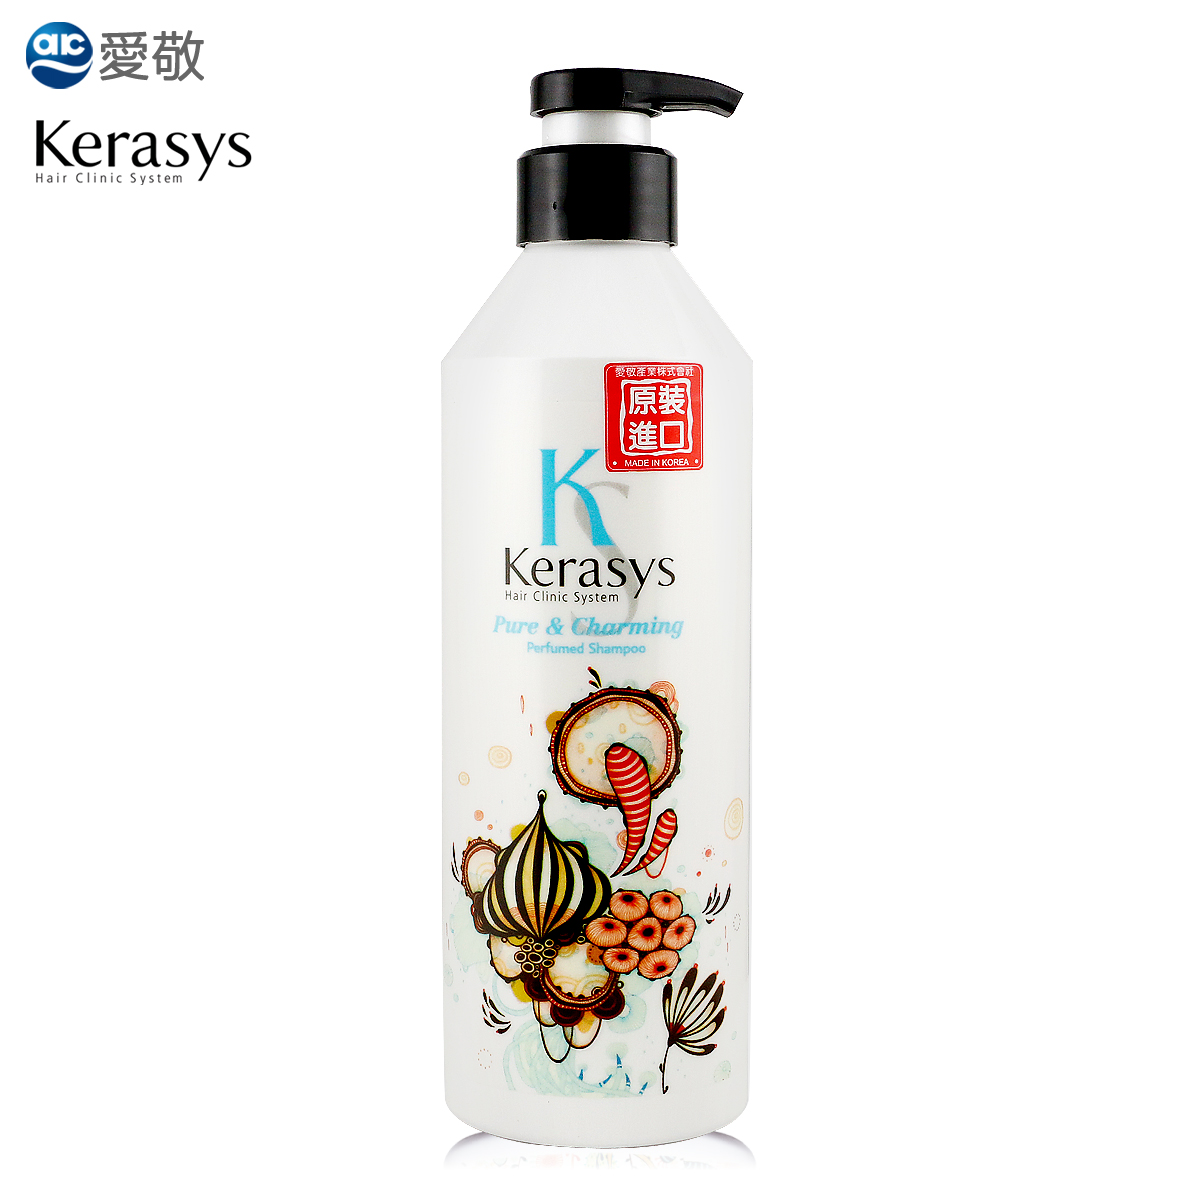 Шампунь Kerasys  Ks 600ml  шампунь kerasys 600ml